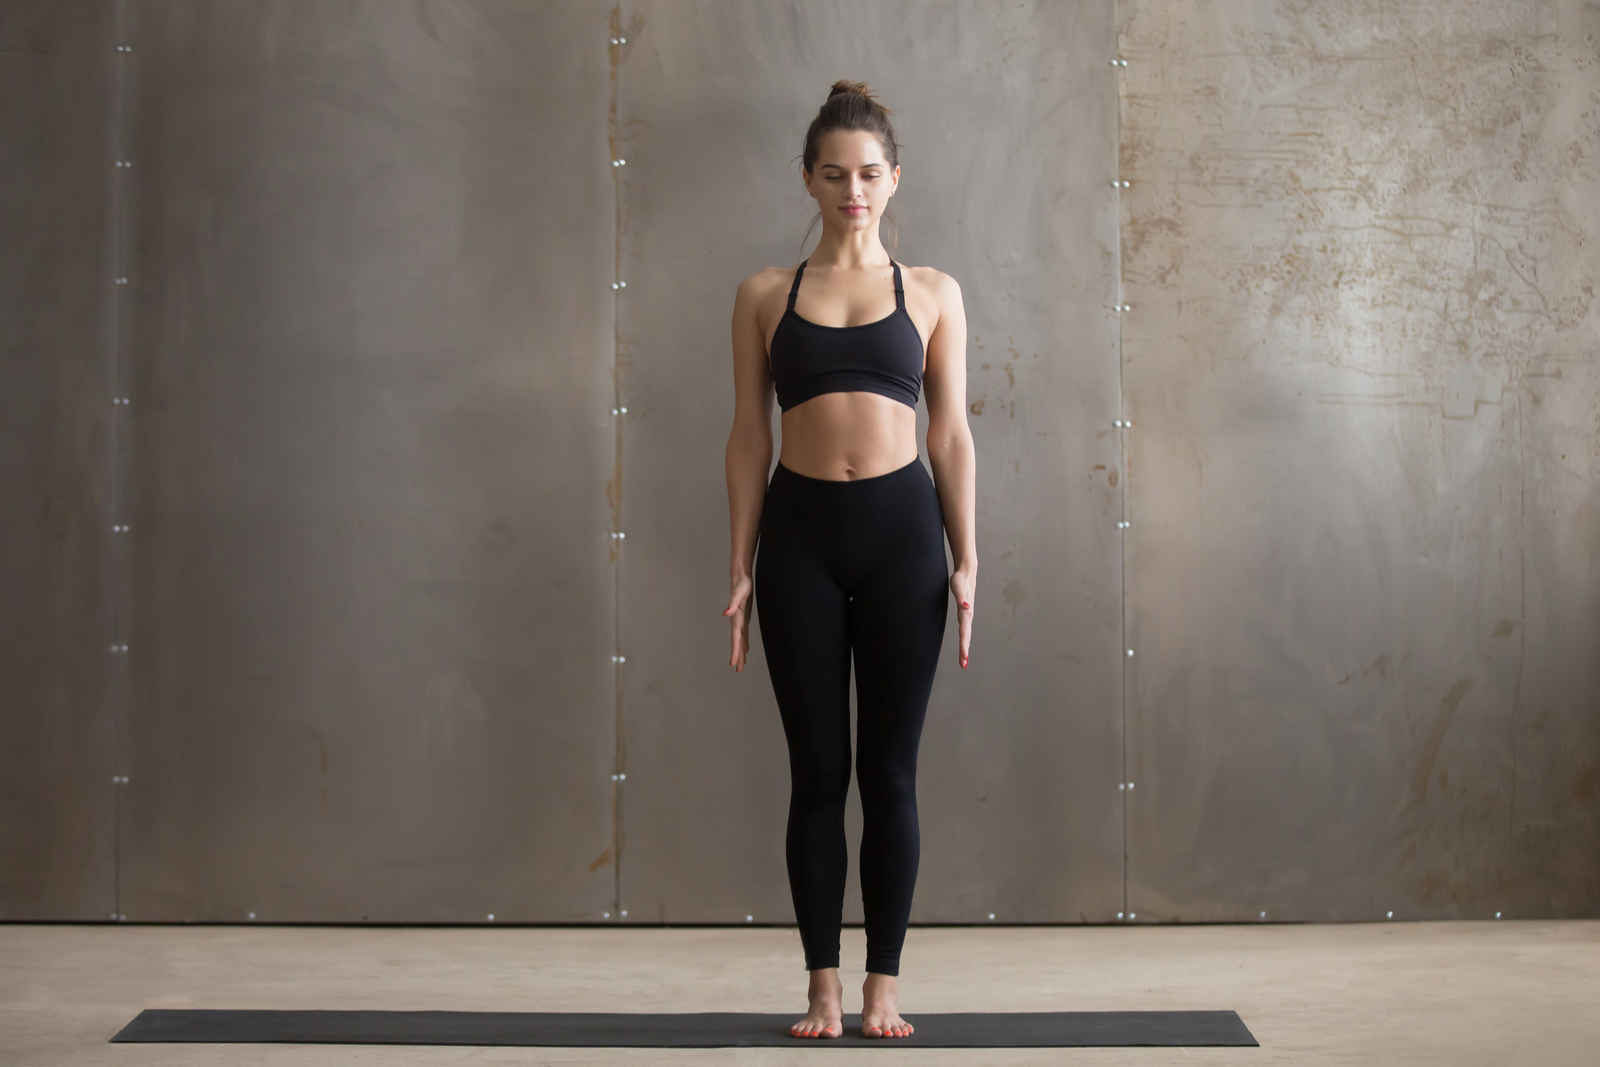 Mountain Pose | Yoga for Beginners: A Definitive Guide If You're New To Yoga